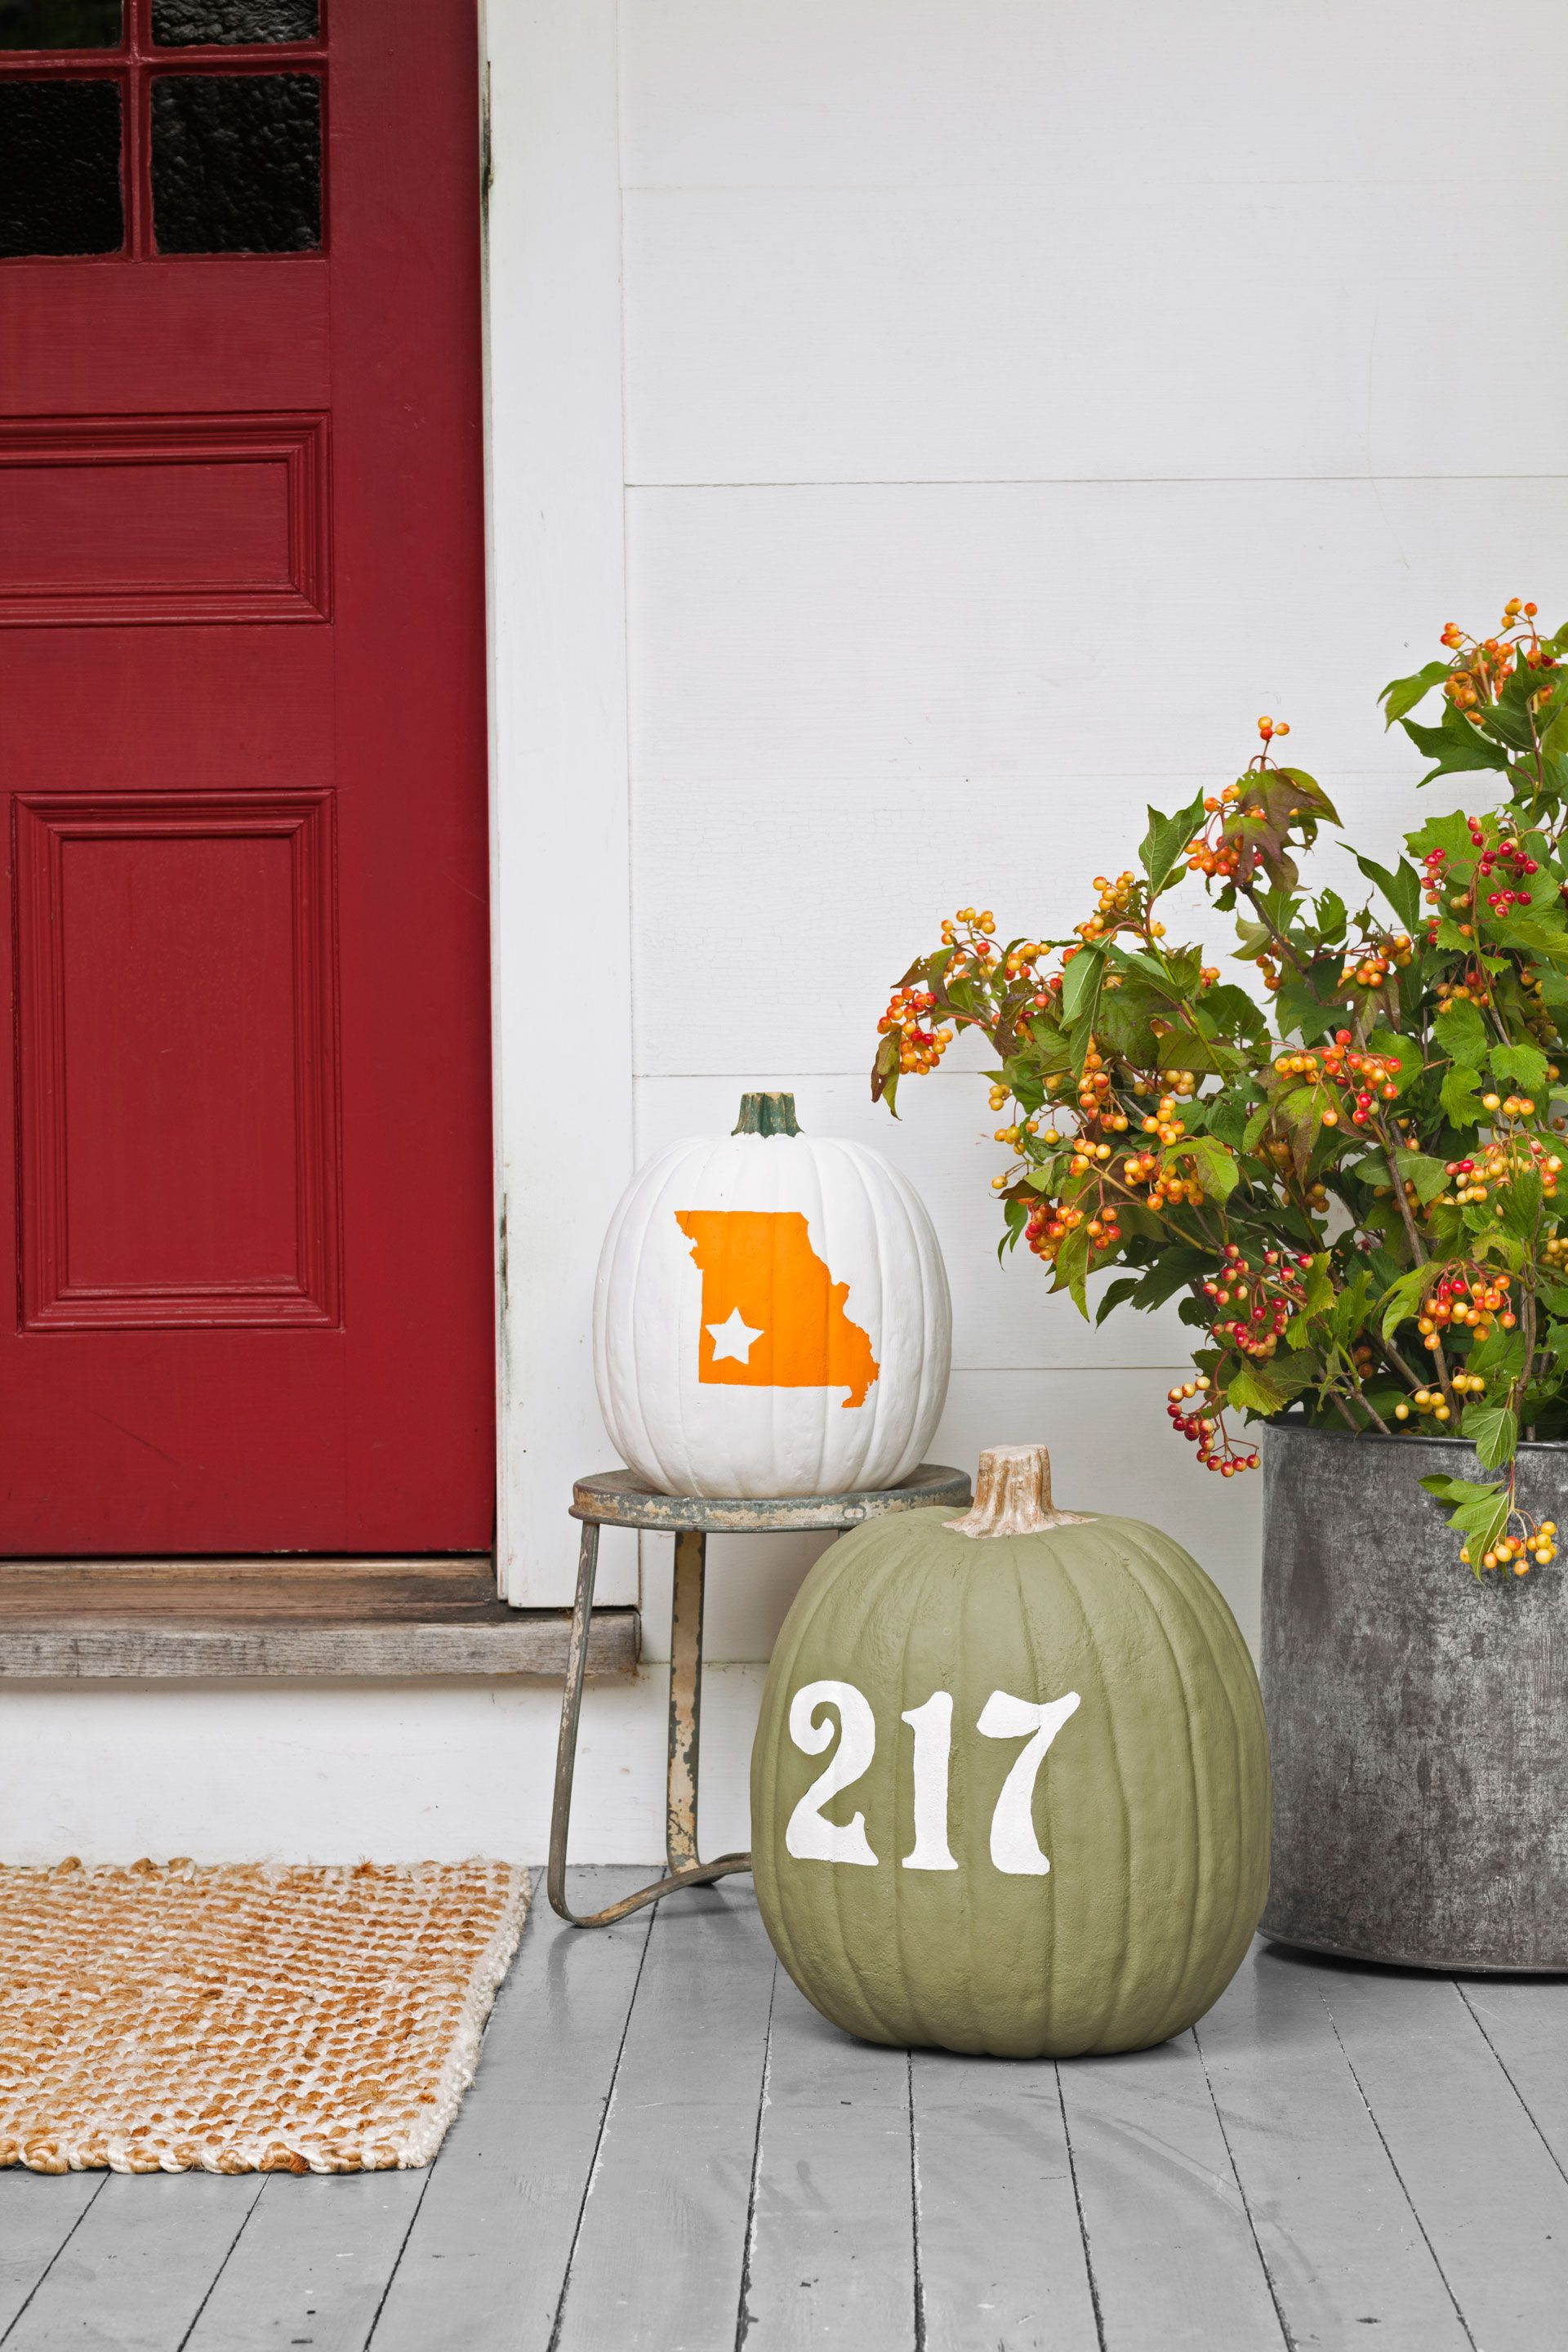 Creative Ideas For NoCarve Pumpkins Party Guests House And - Delicate fall decor ideas for this autumn